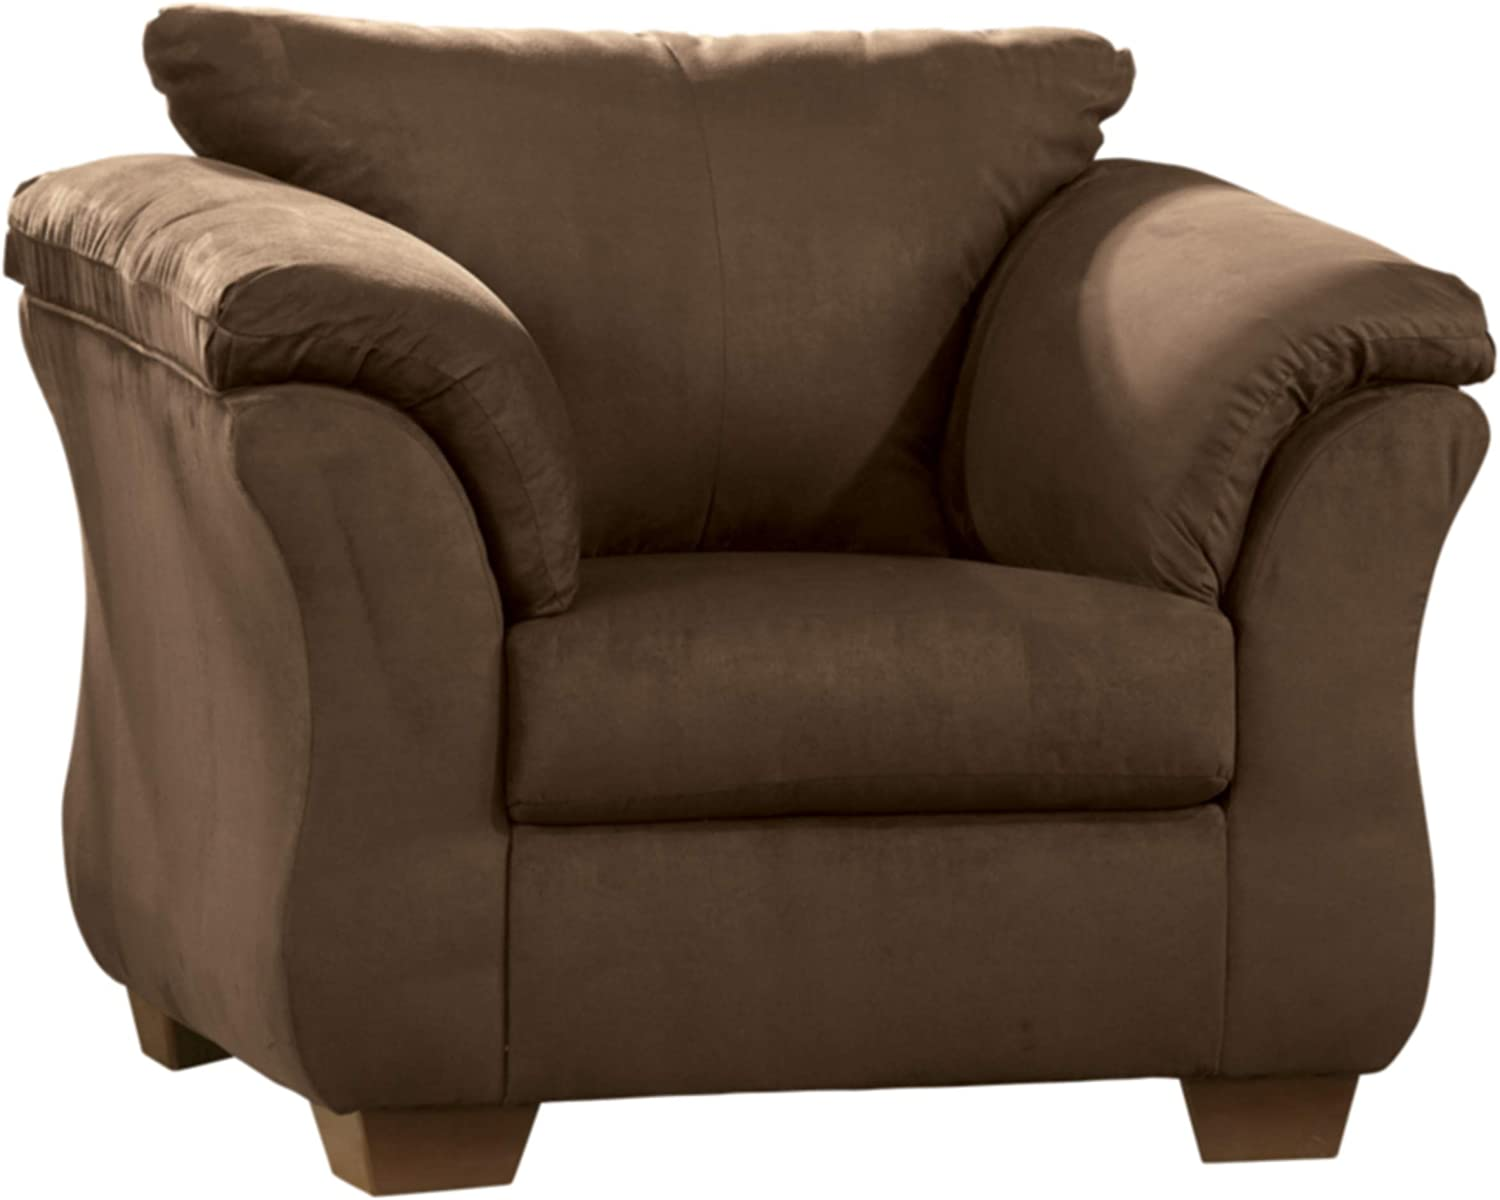 Signature Design by Ashley - Darcy Accent Arm Chair w/ Loose Seat Cushion, Cafe Brown